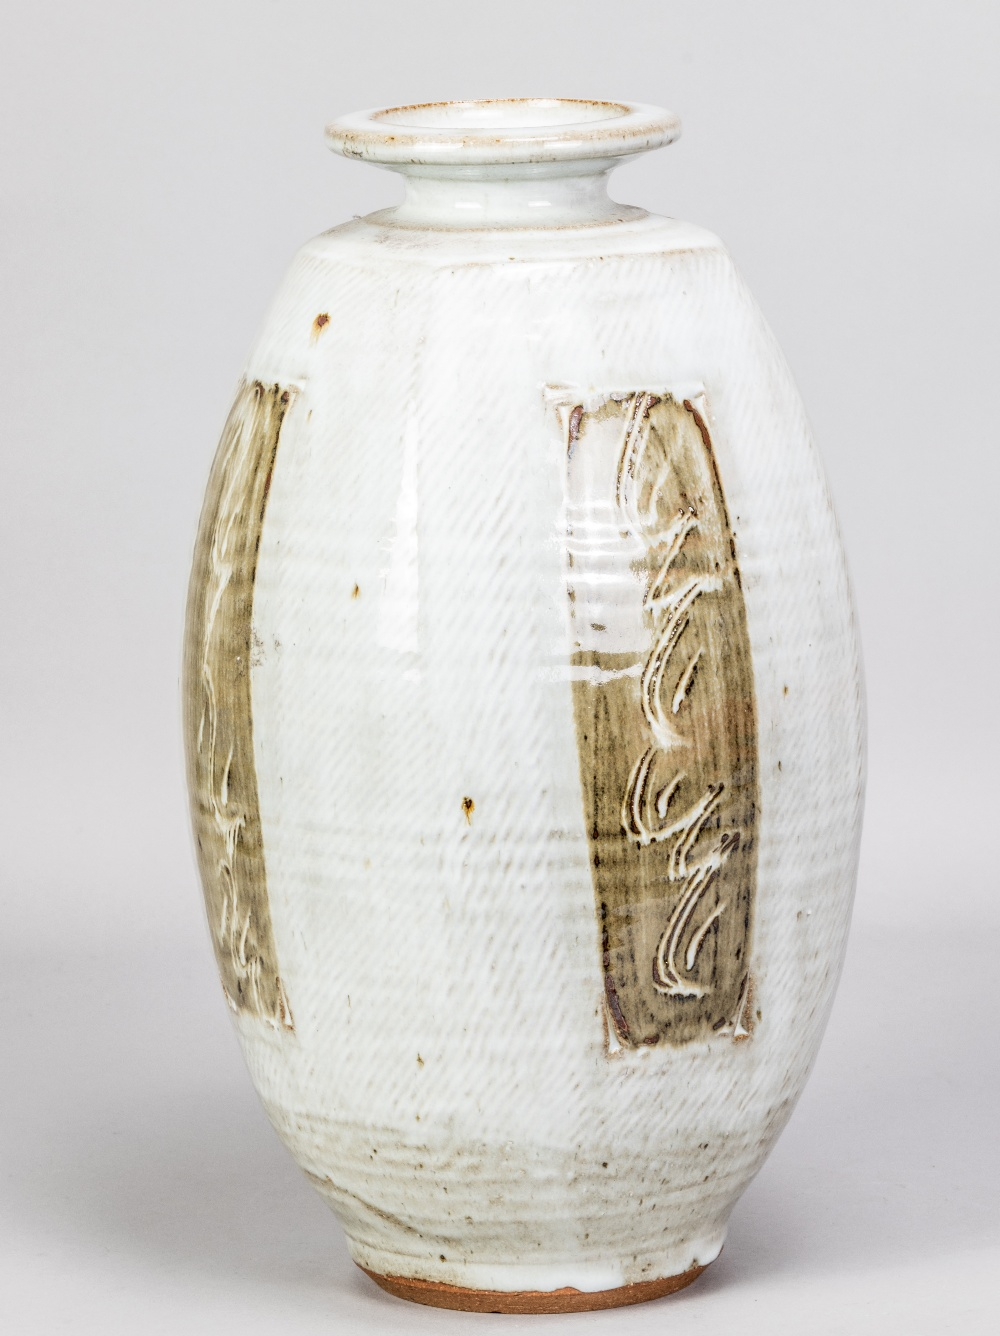 WILLIAM PLUMPTRE (born 1959); a tall stoneware bottle covered in braided white glaze decorated - Image 2 of 4